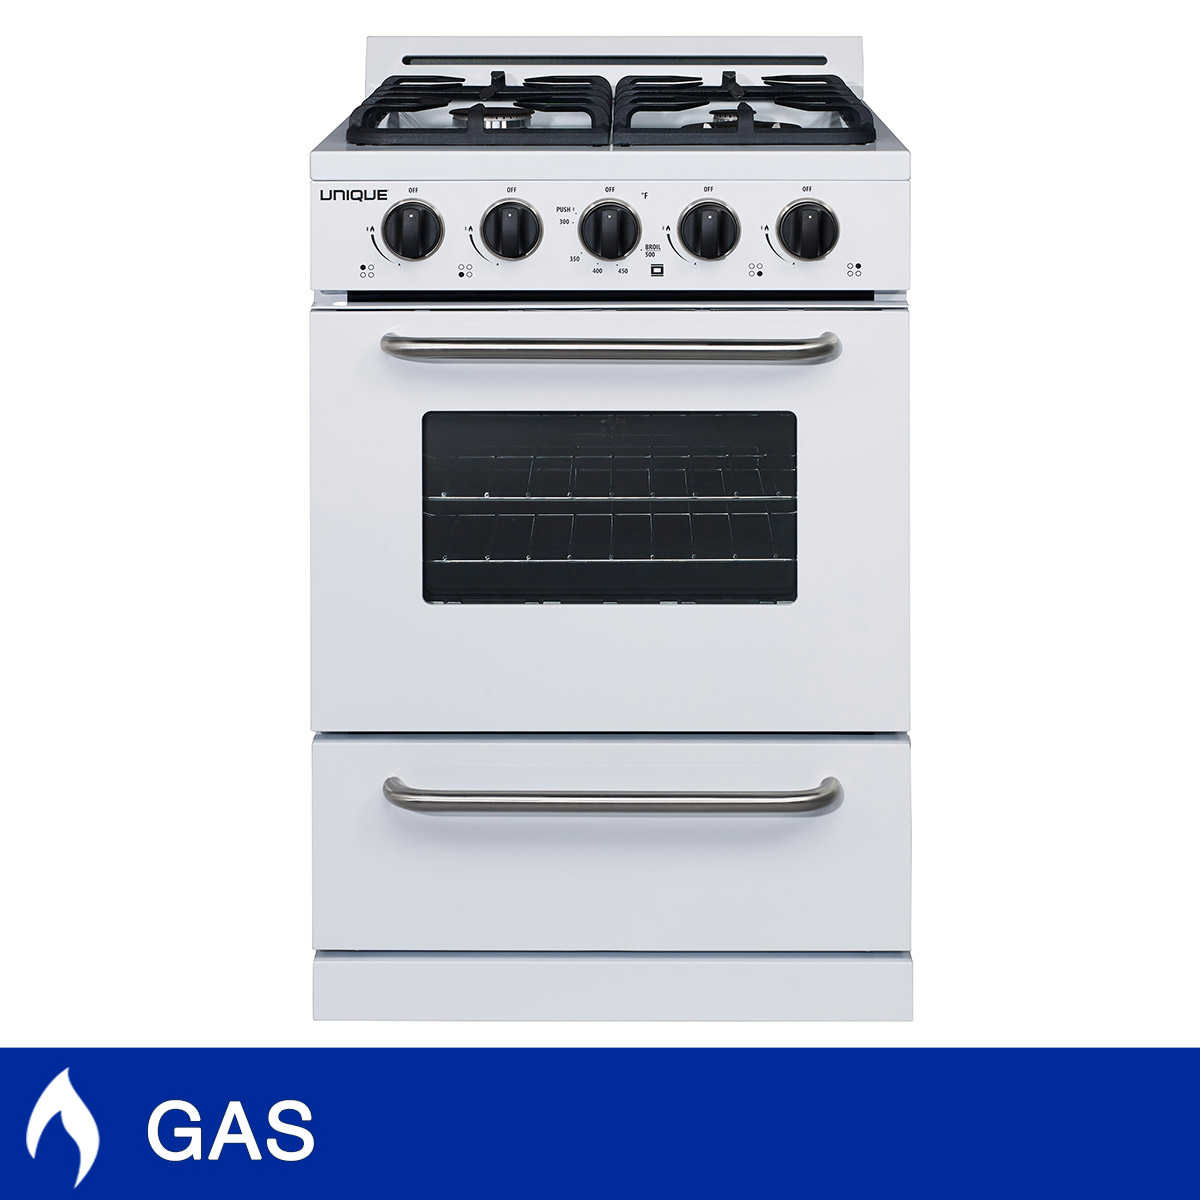 Kitchen Small Appliances Edmonton - Unique 24 in off grid 4 burner gas range